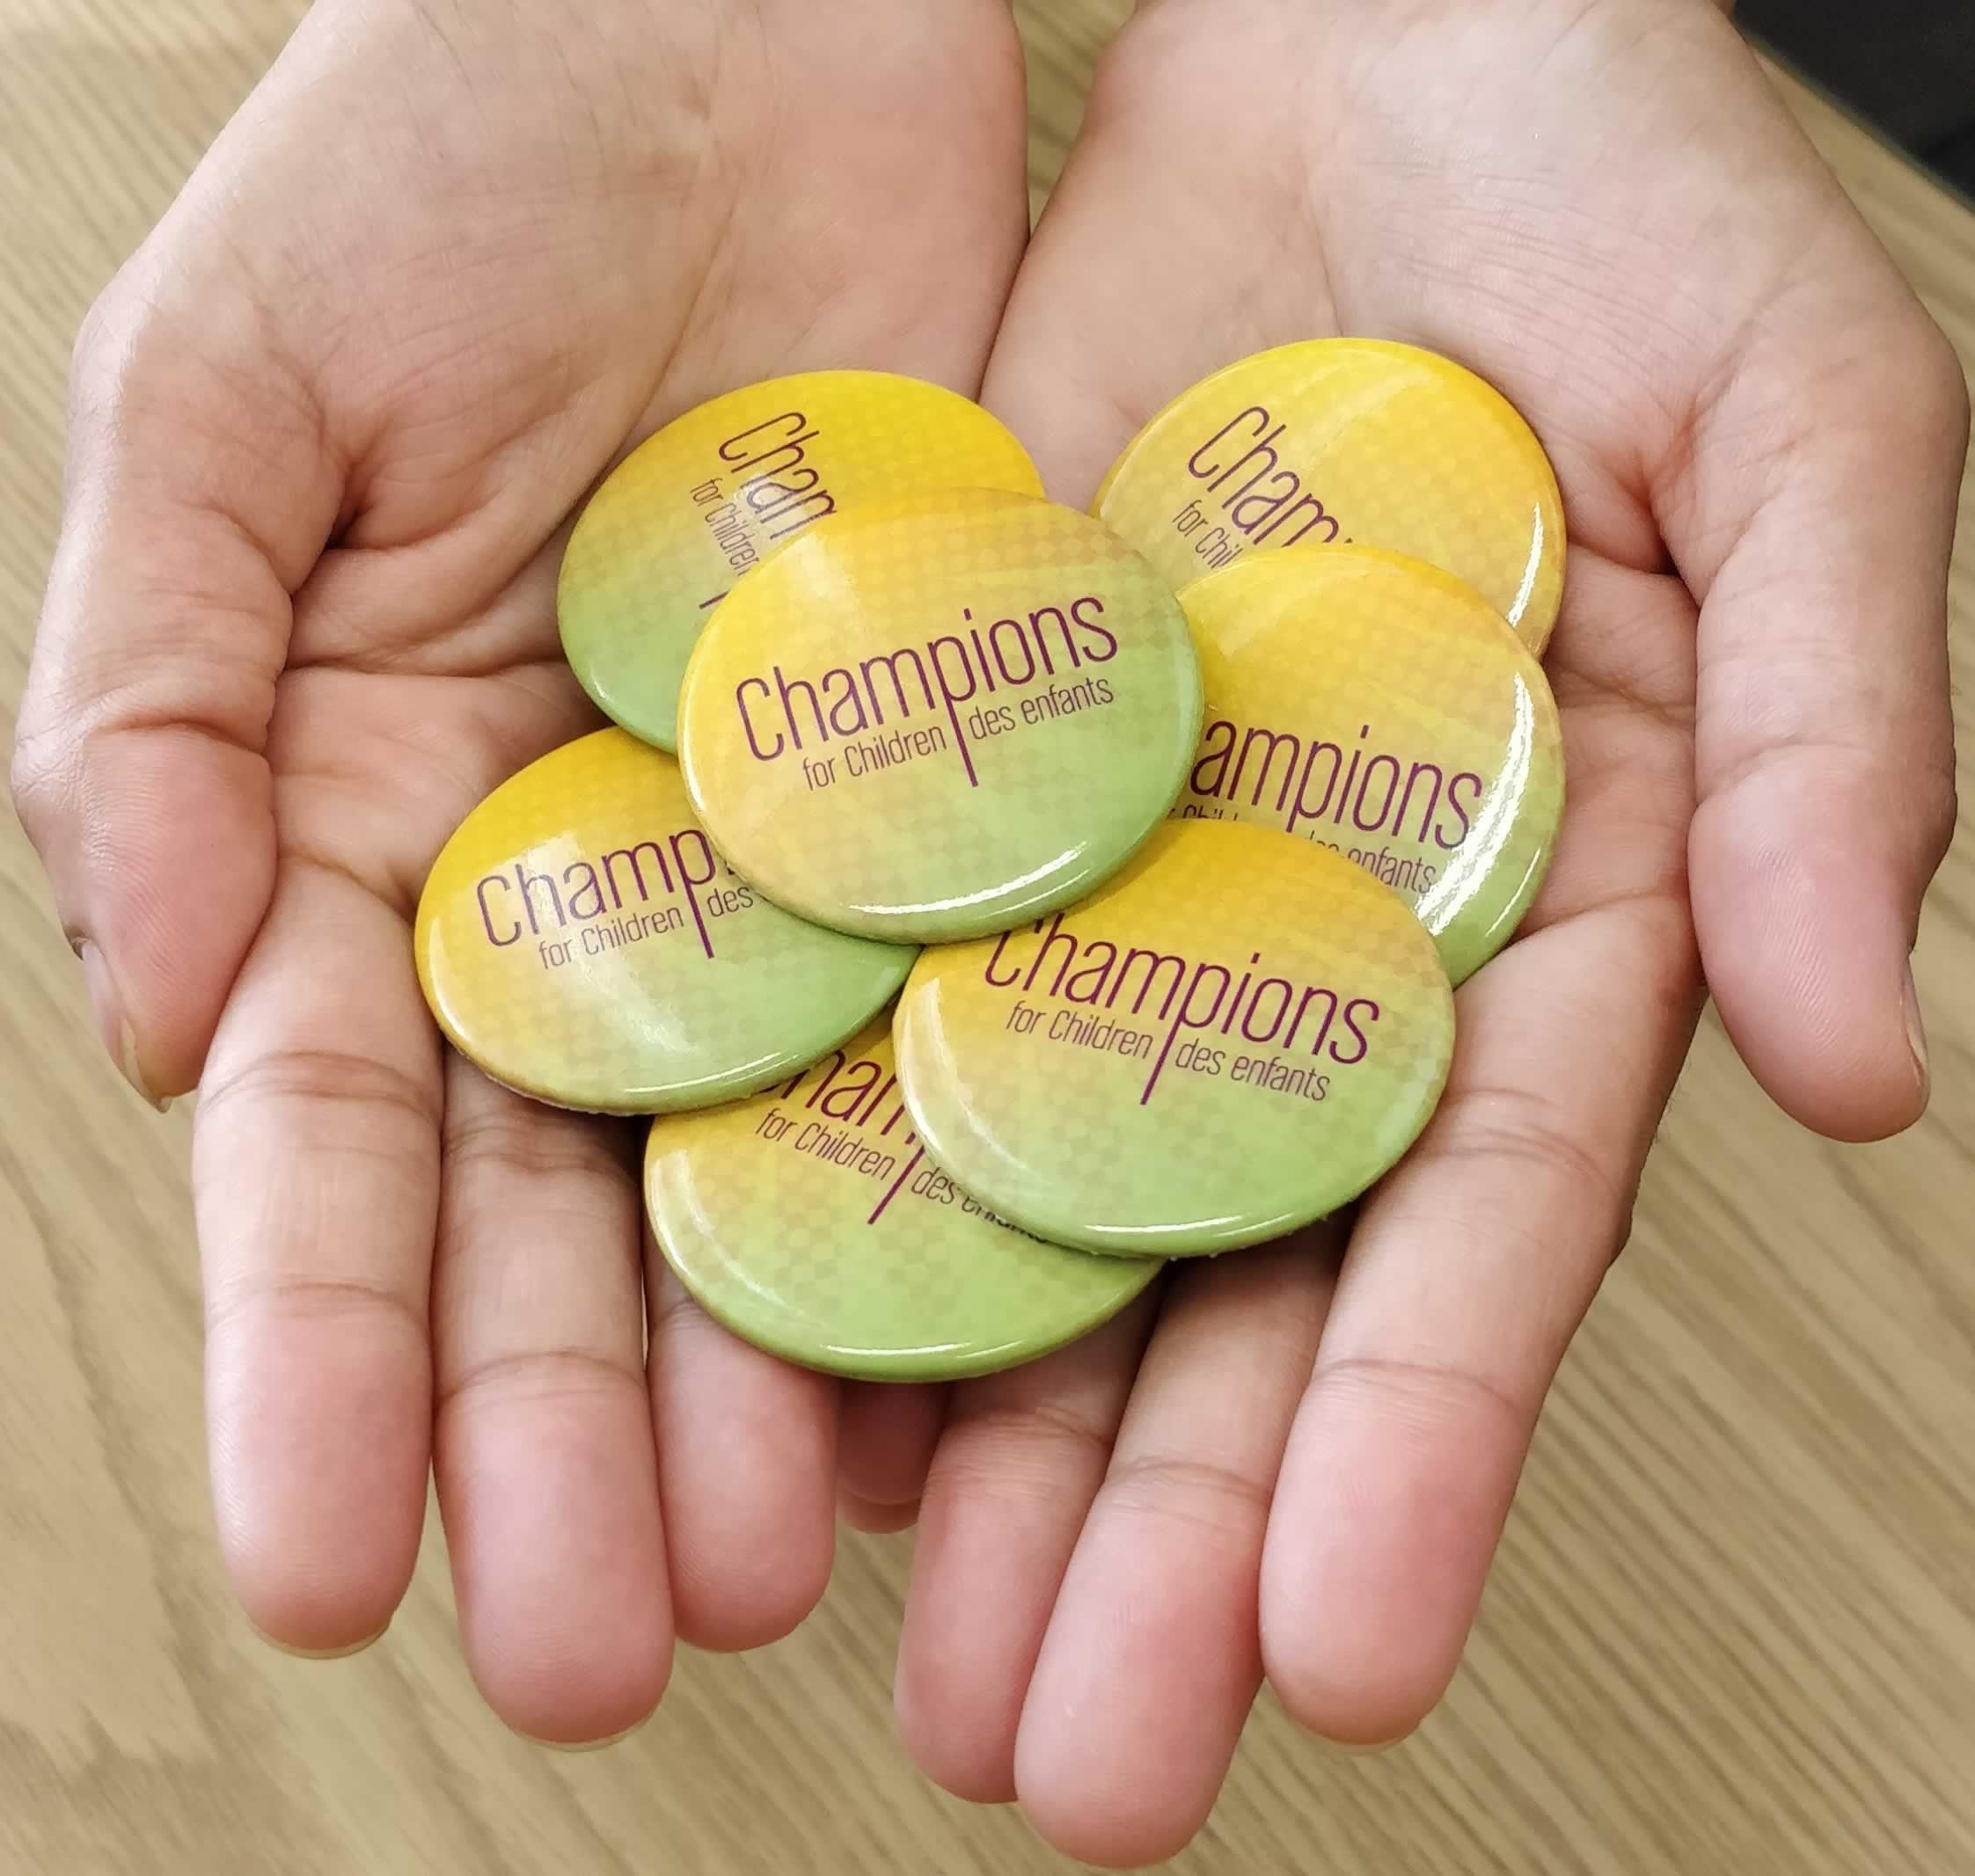 Handful of buttons that say Champions for Children / Champions des enfants